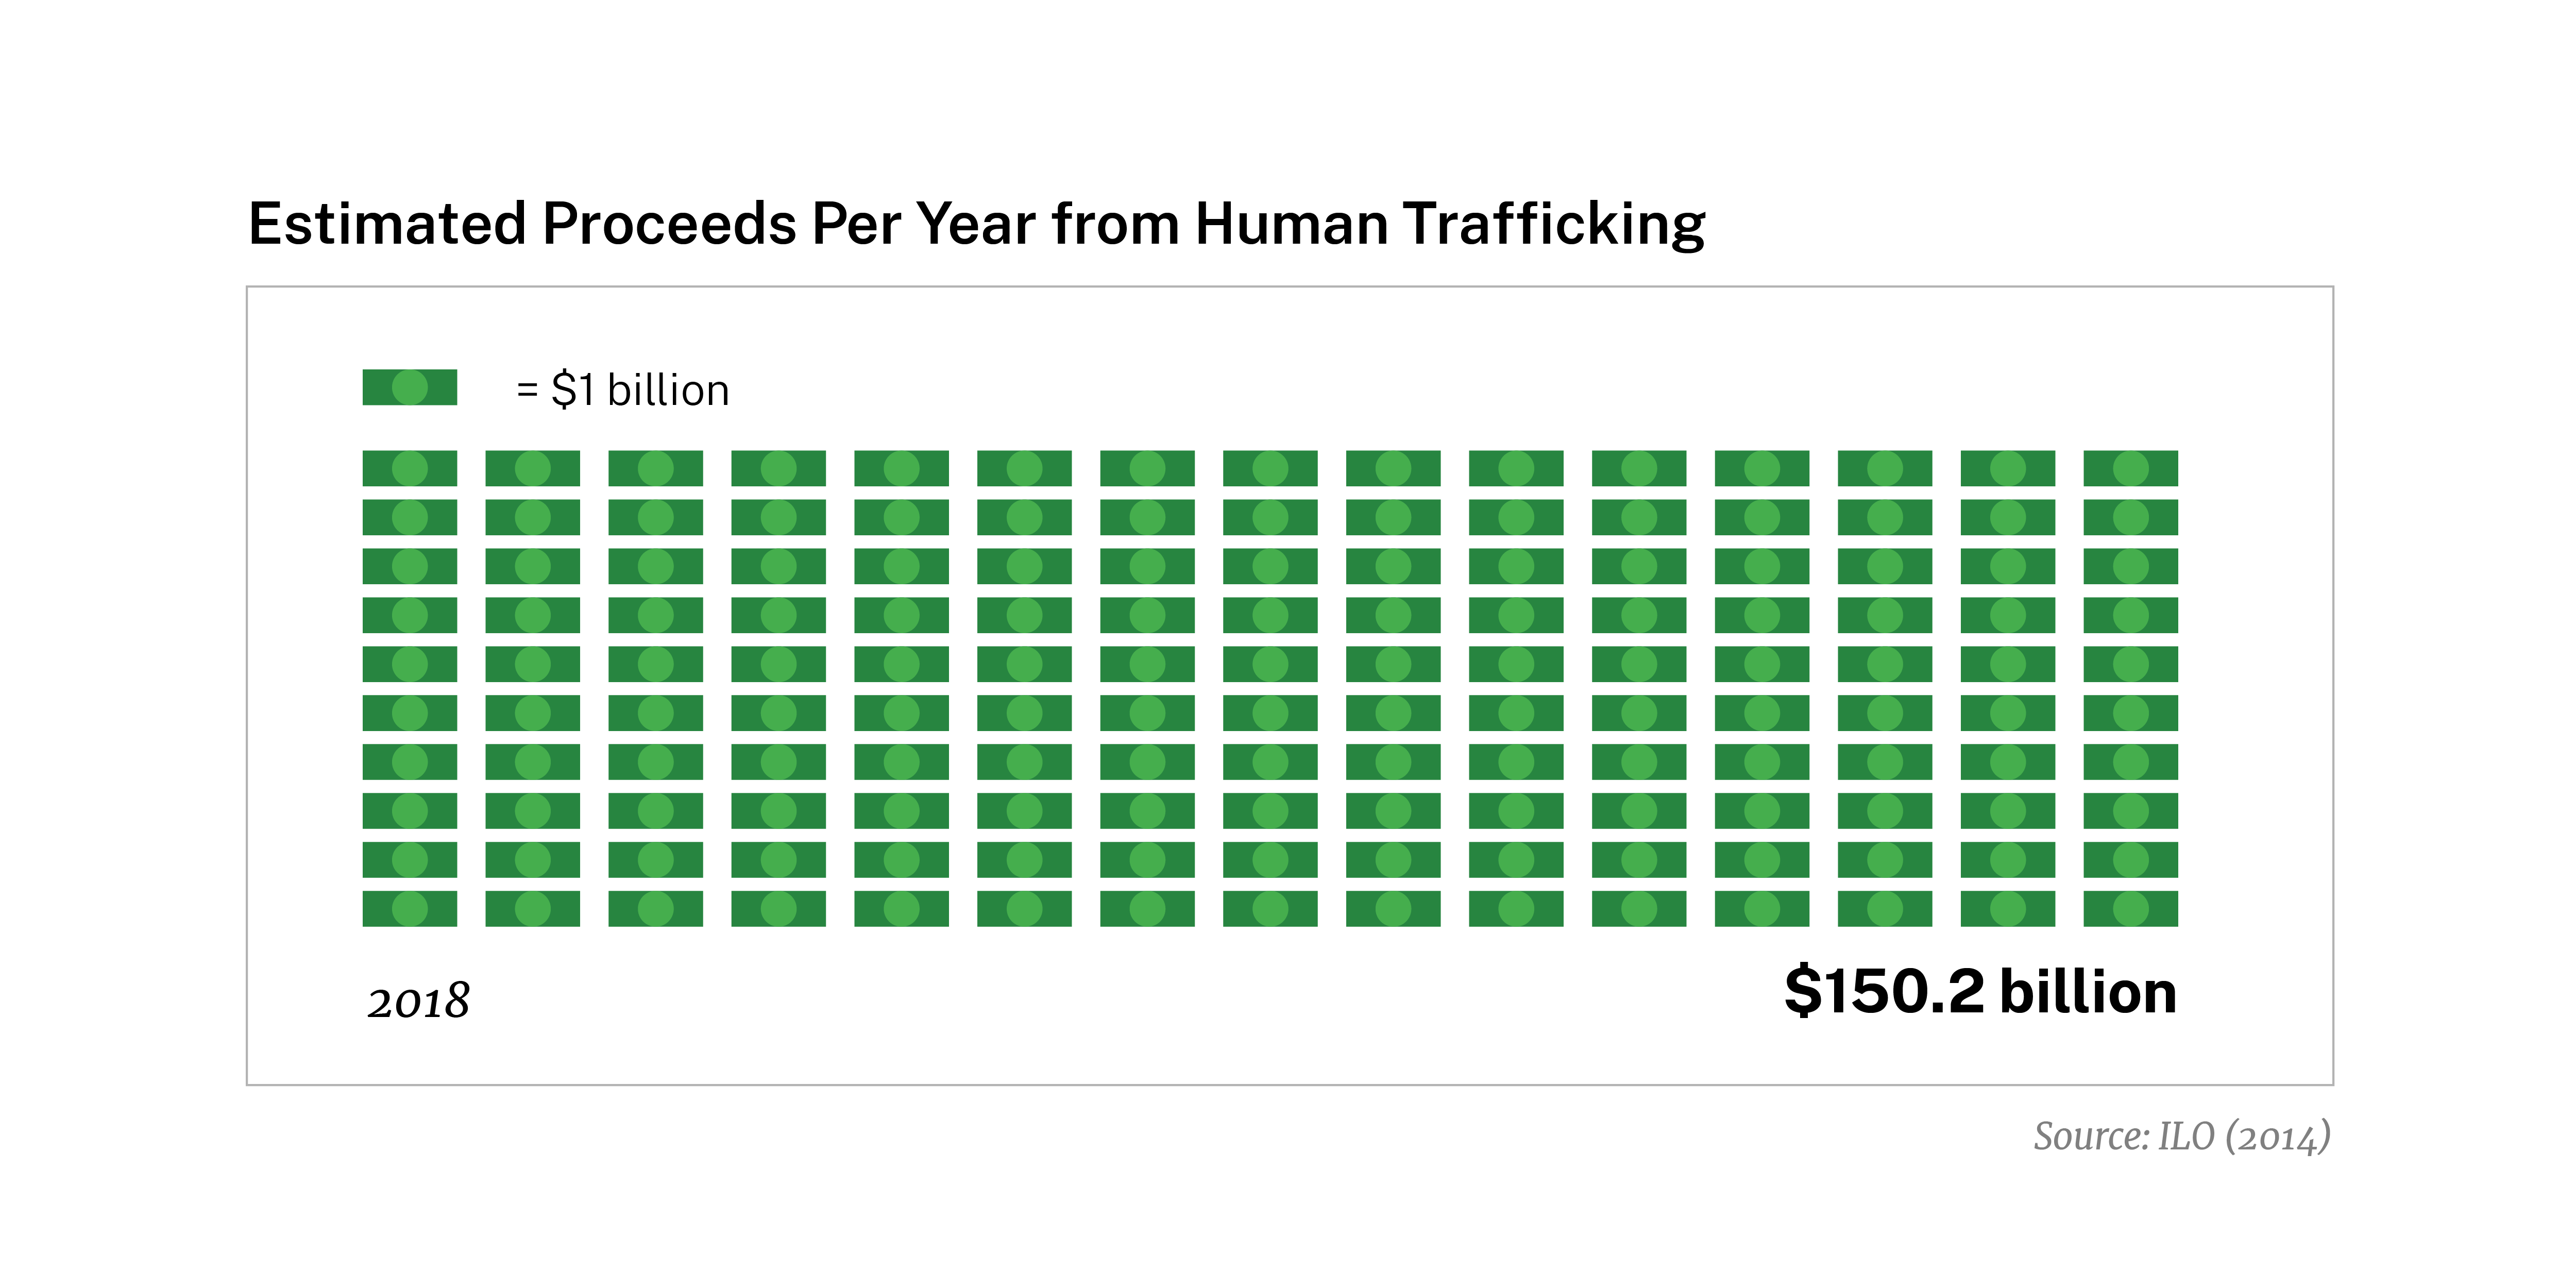 Estimated Proceeds Per Year from Human Trafficking